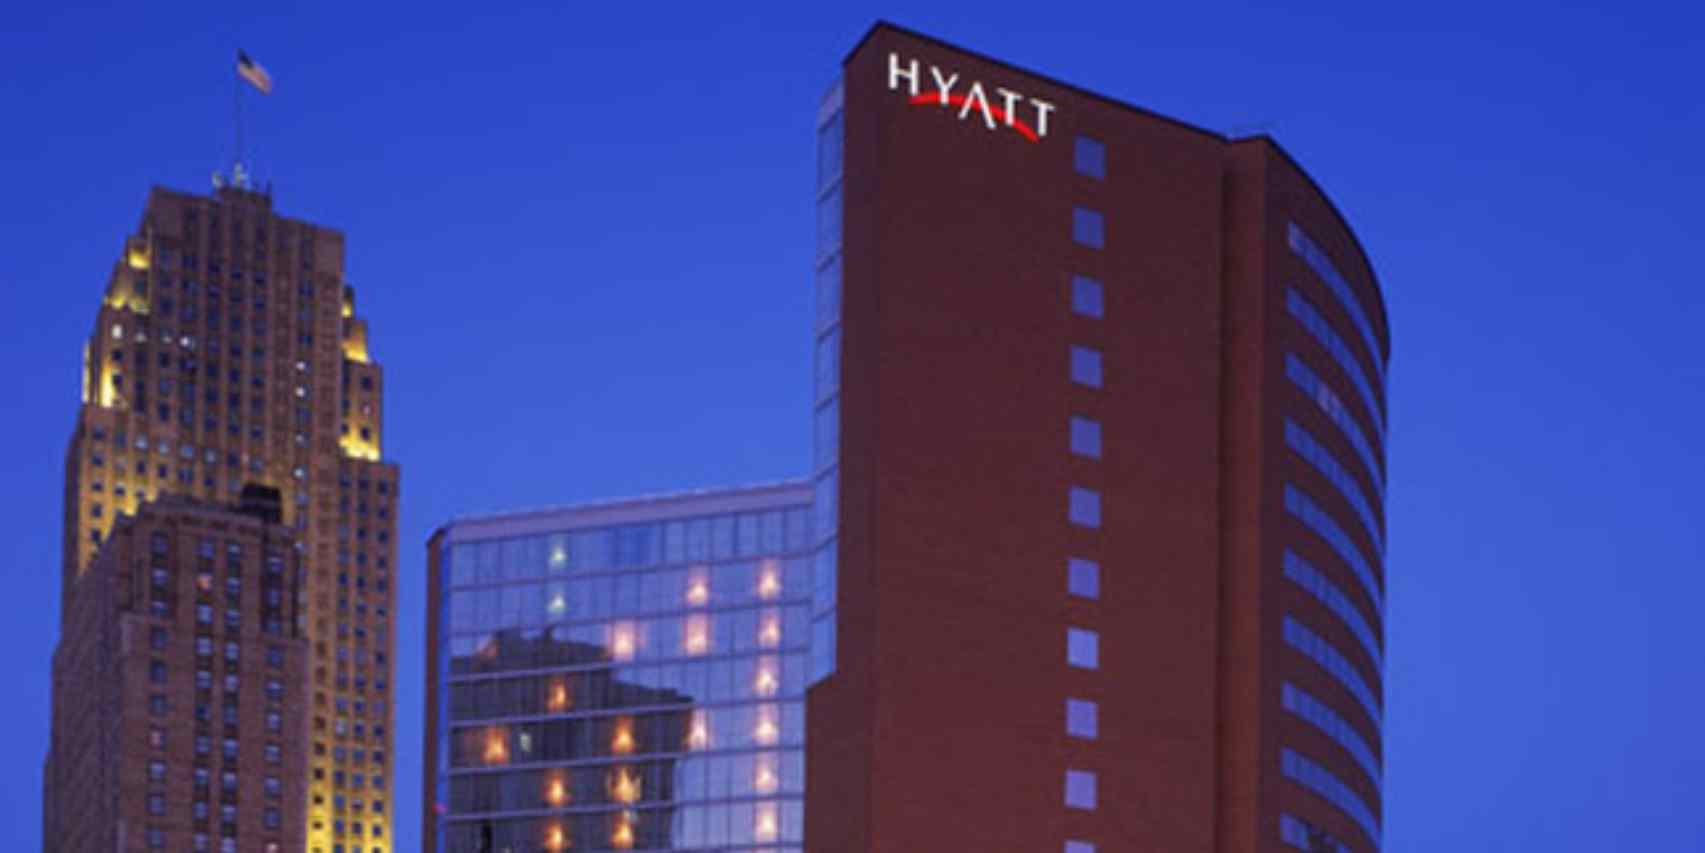 joshua hanson fell from the 17th floor of the hyatt regency.